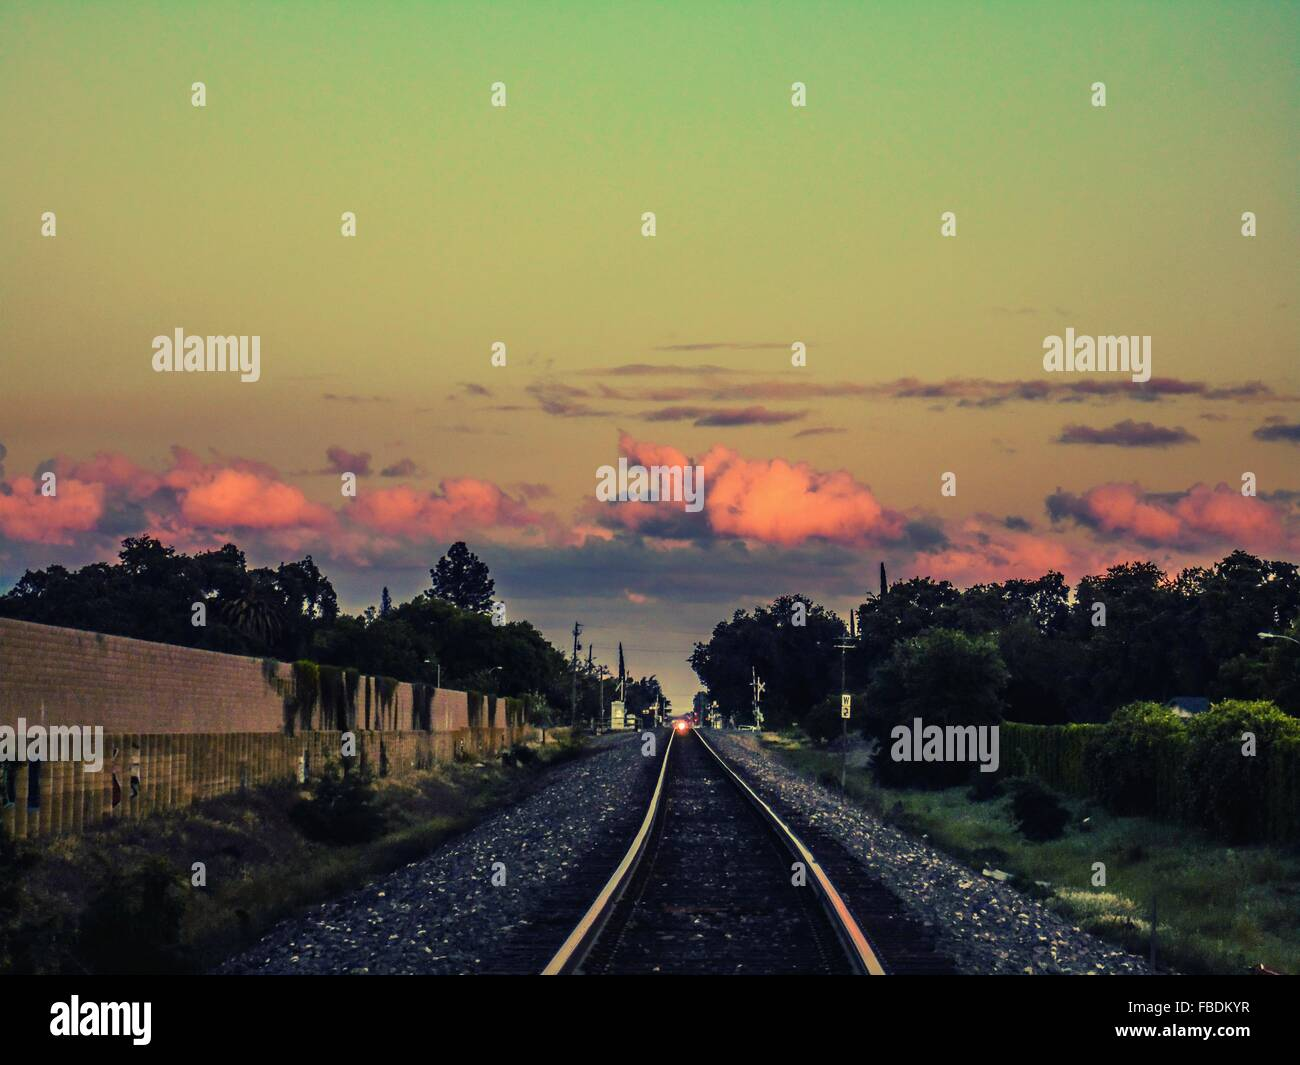 Railroad Track On Field Against Sky At Sunset - Stock Image